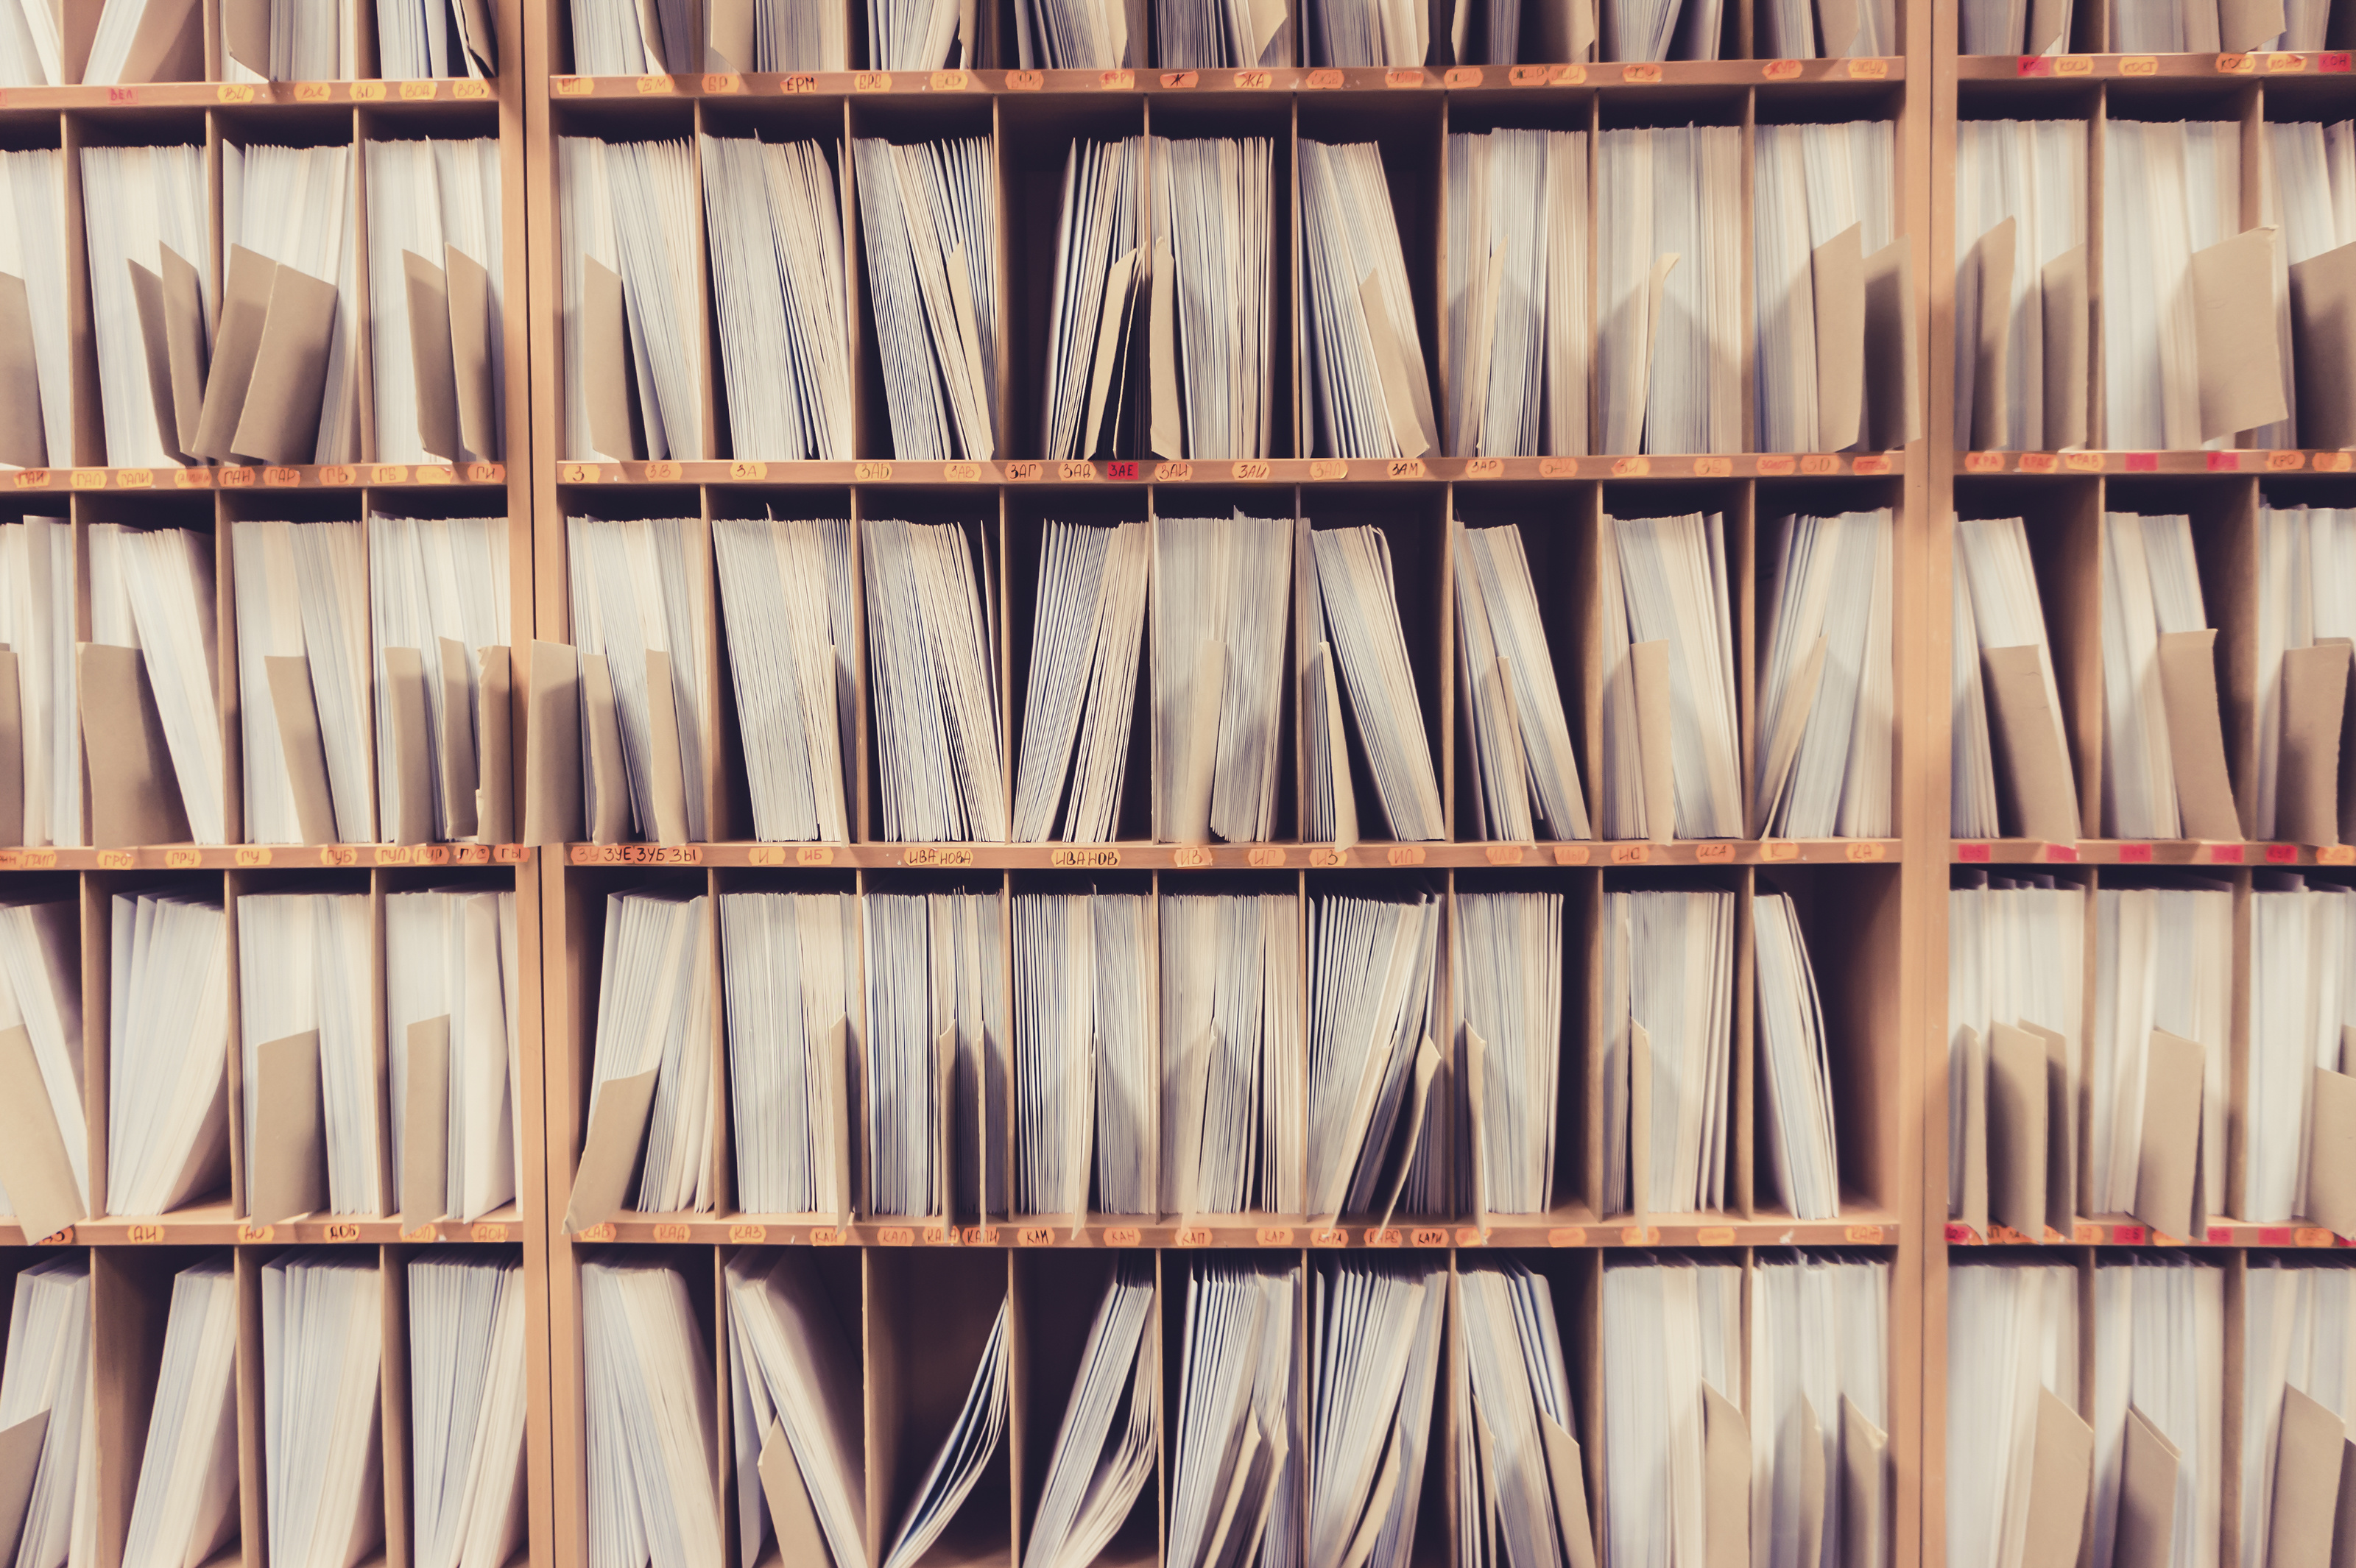 Keeping paper records on the shelves.